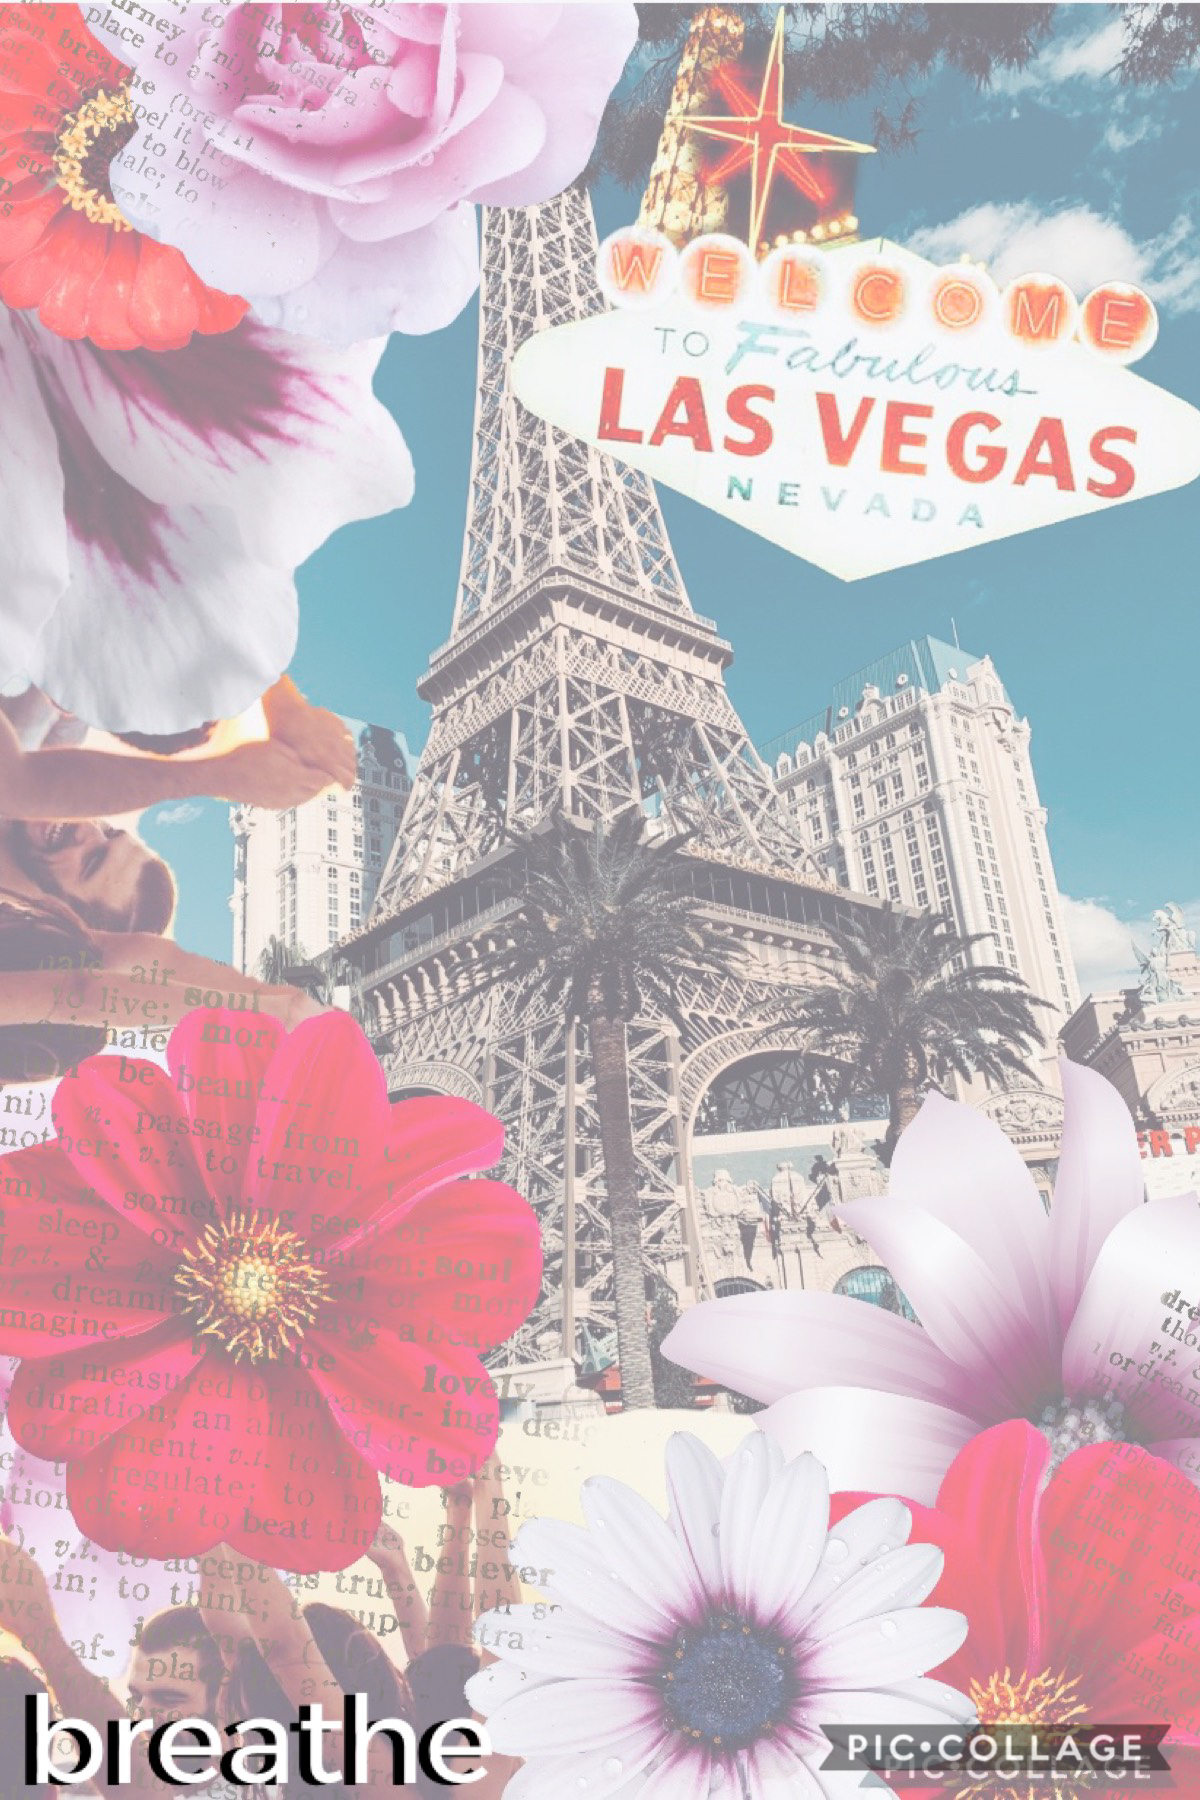 Heyyyy guys! Hope y'all are doing well, u amazing peoplee :D Sooooo I tried, cuz I just went to Las Vegas and it was a whole lotta fun lol. Love yalll sm, Sapphire